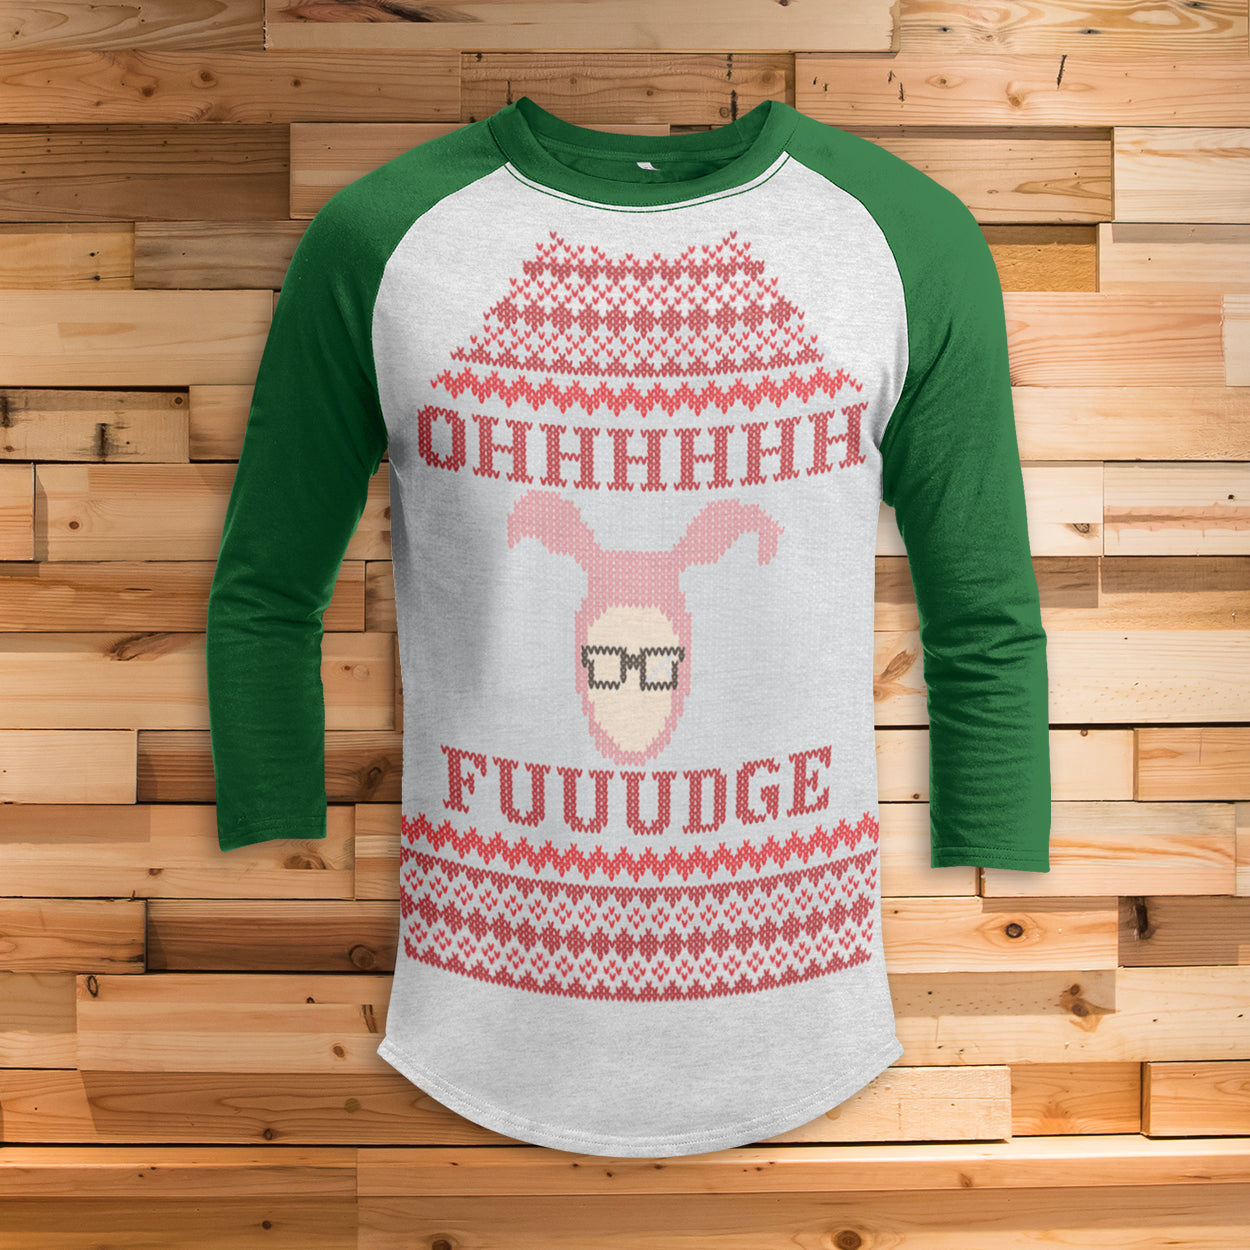 Ohh Fudge Ralphie Dark 3/4 Sleeve Raglan - Christmas Story Movie Shirt